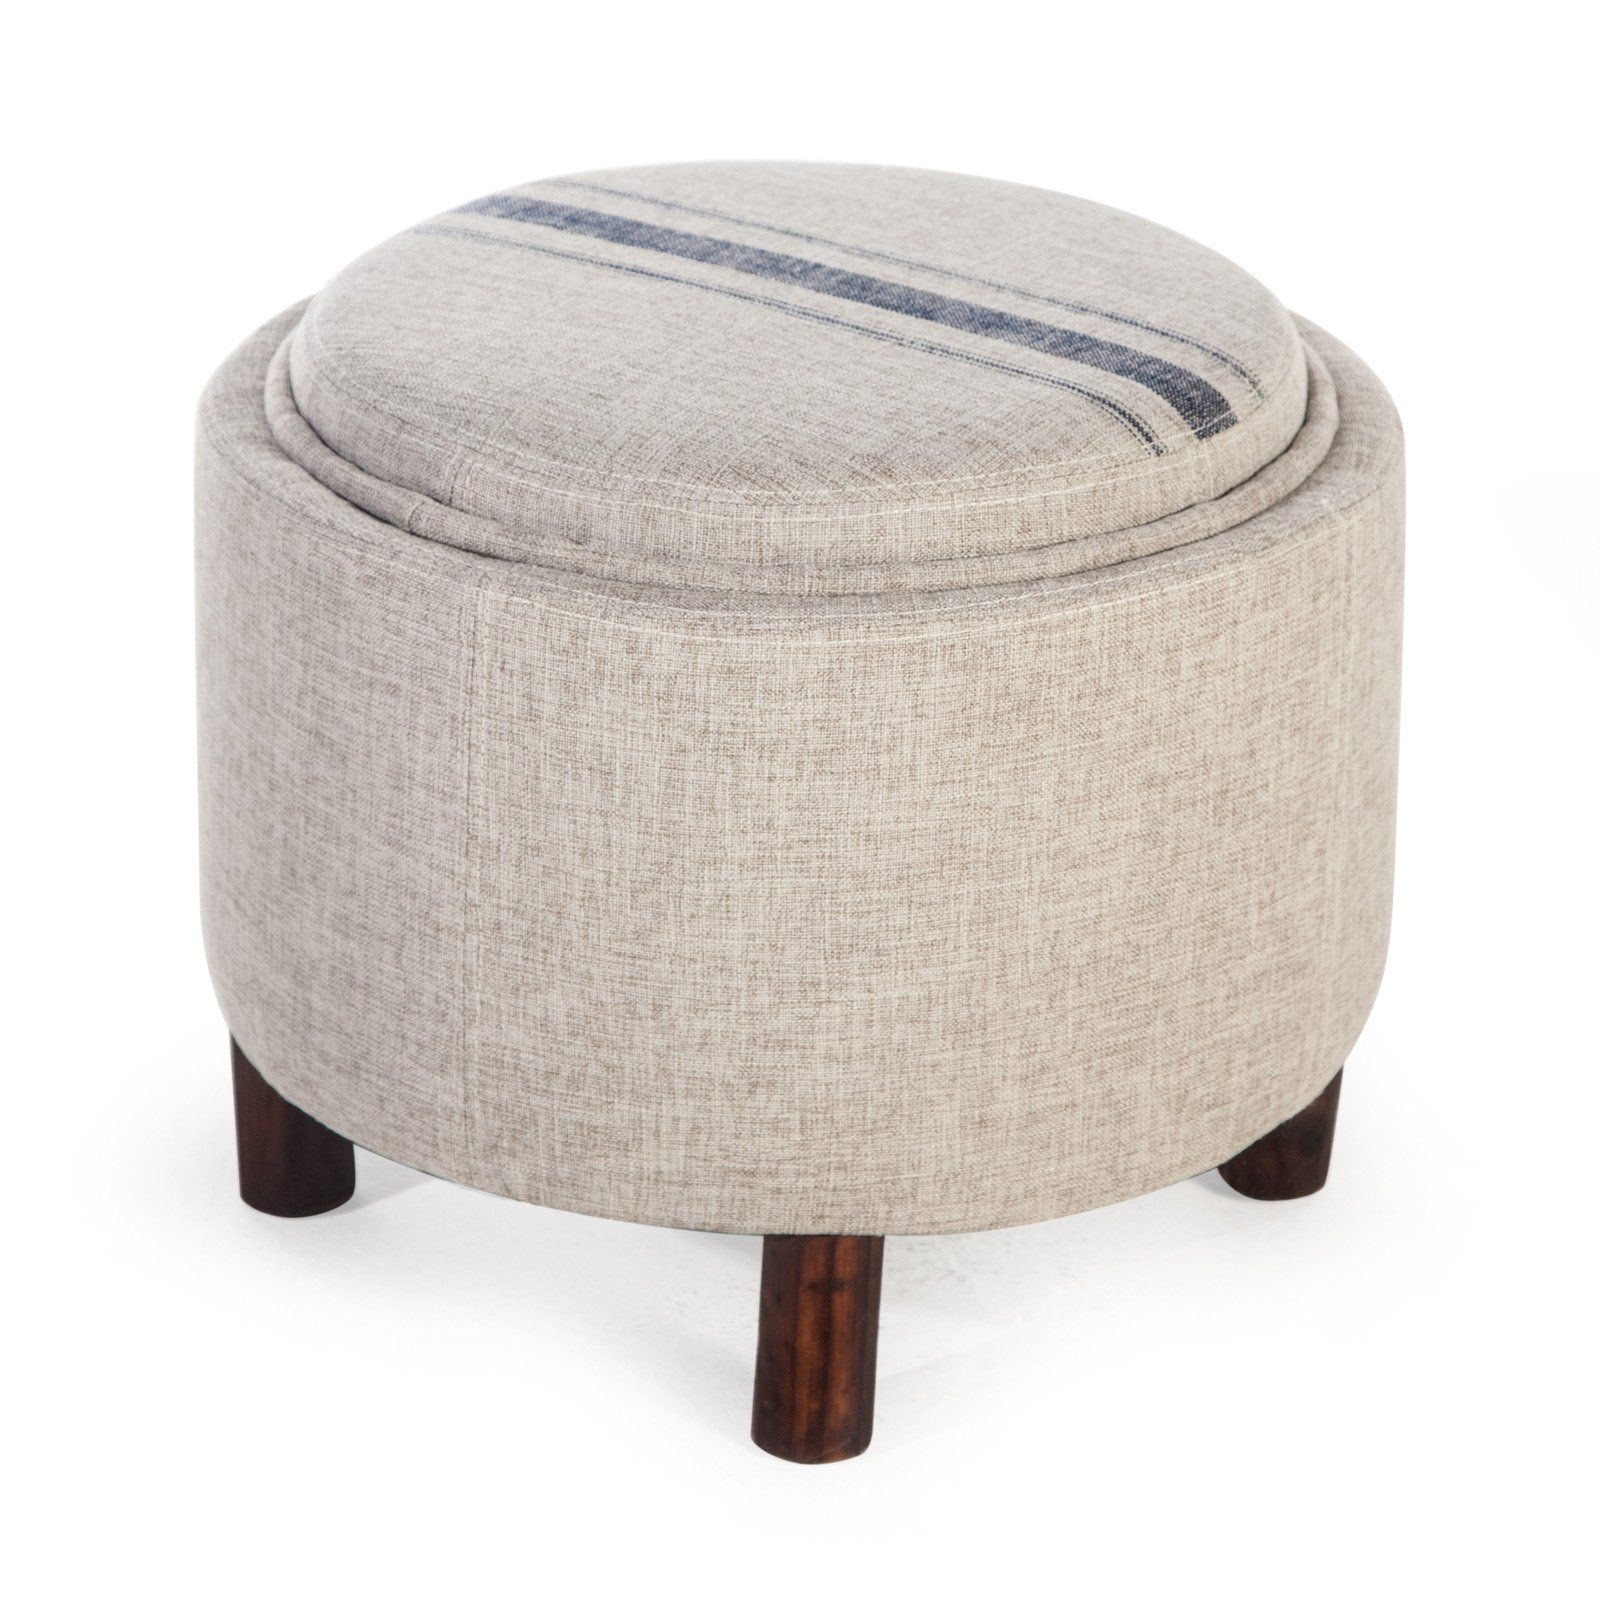 Magnificent Belham Living Ingram Round Storage Ottoman With Cocktail Pdpeps Interior Chair Design Pdpepsorg